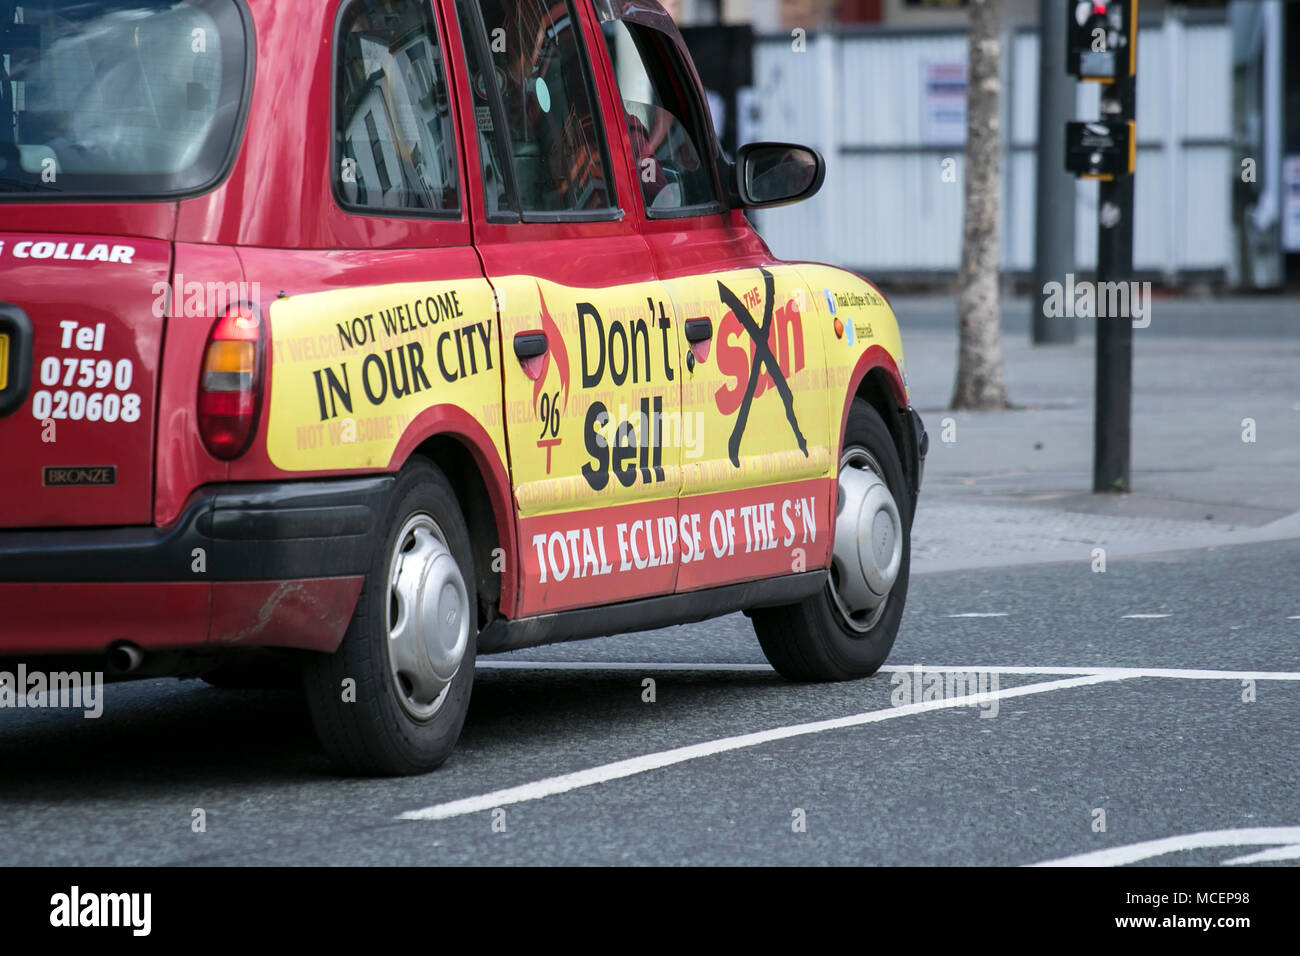 Do not buy The Sun newspaper on side of taxi in Liverpool city centre - Stock Image